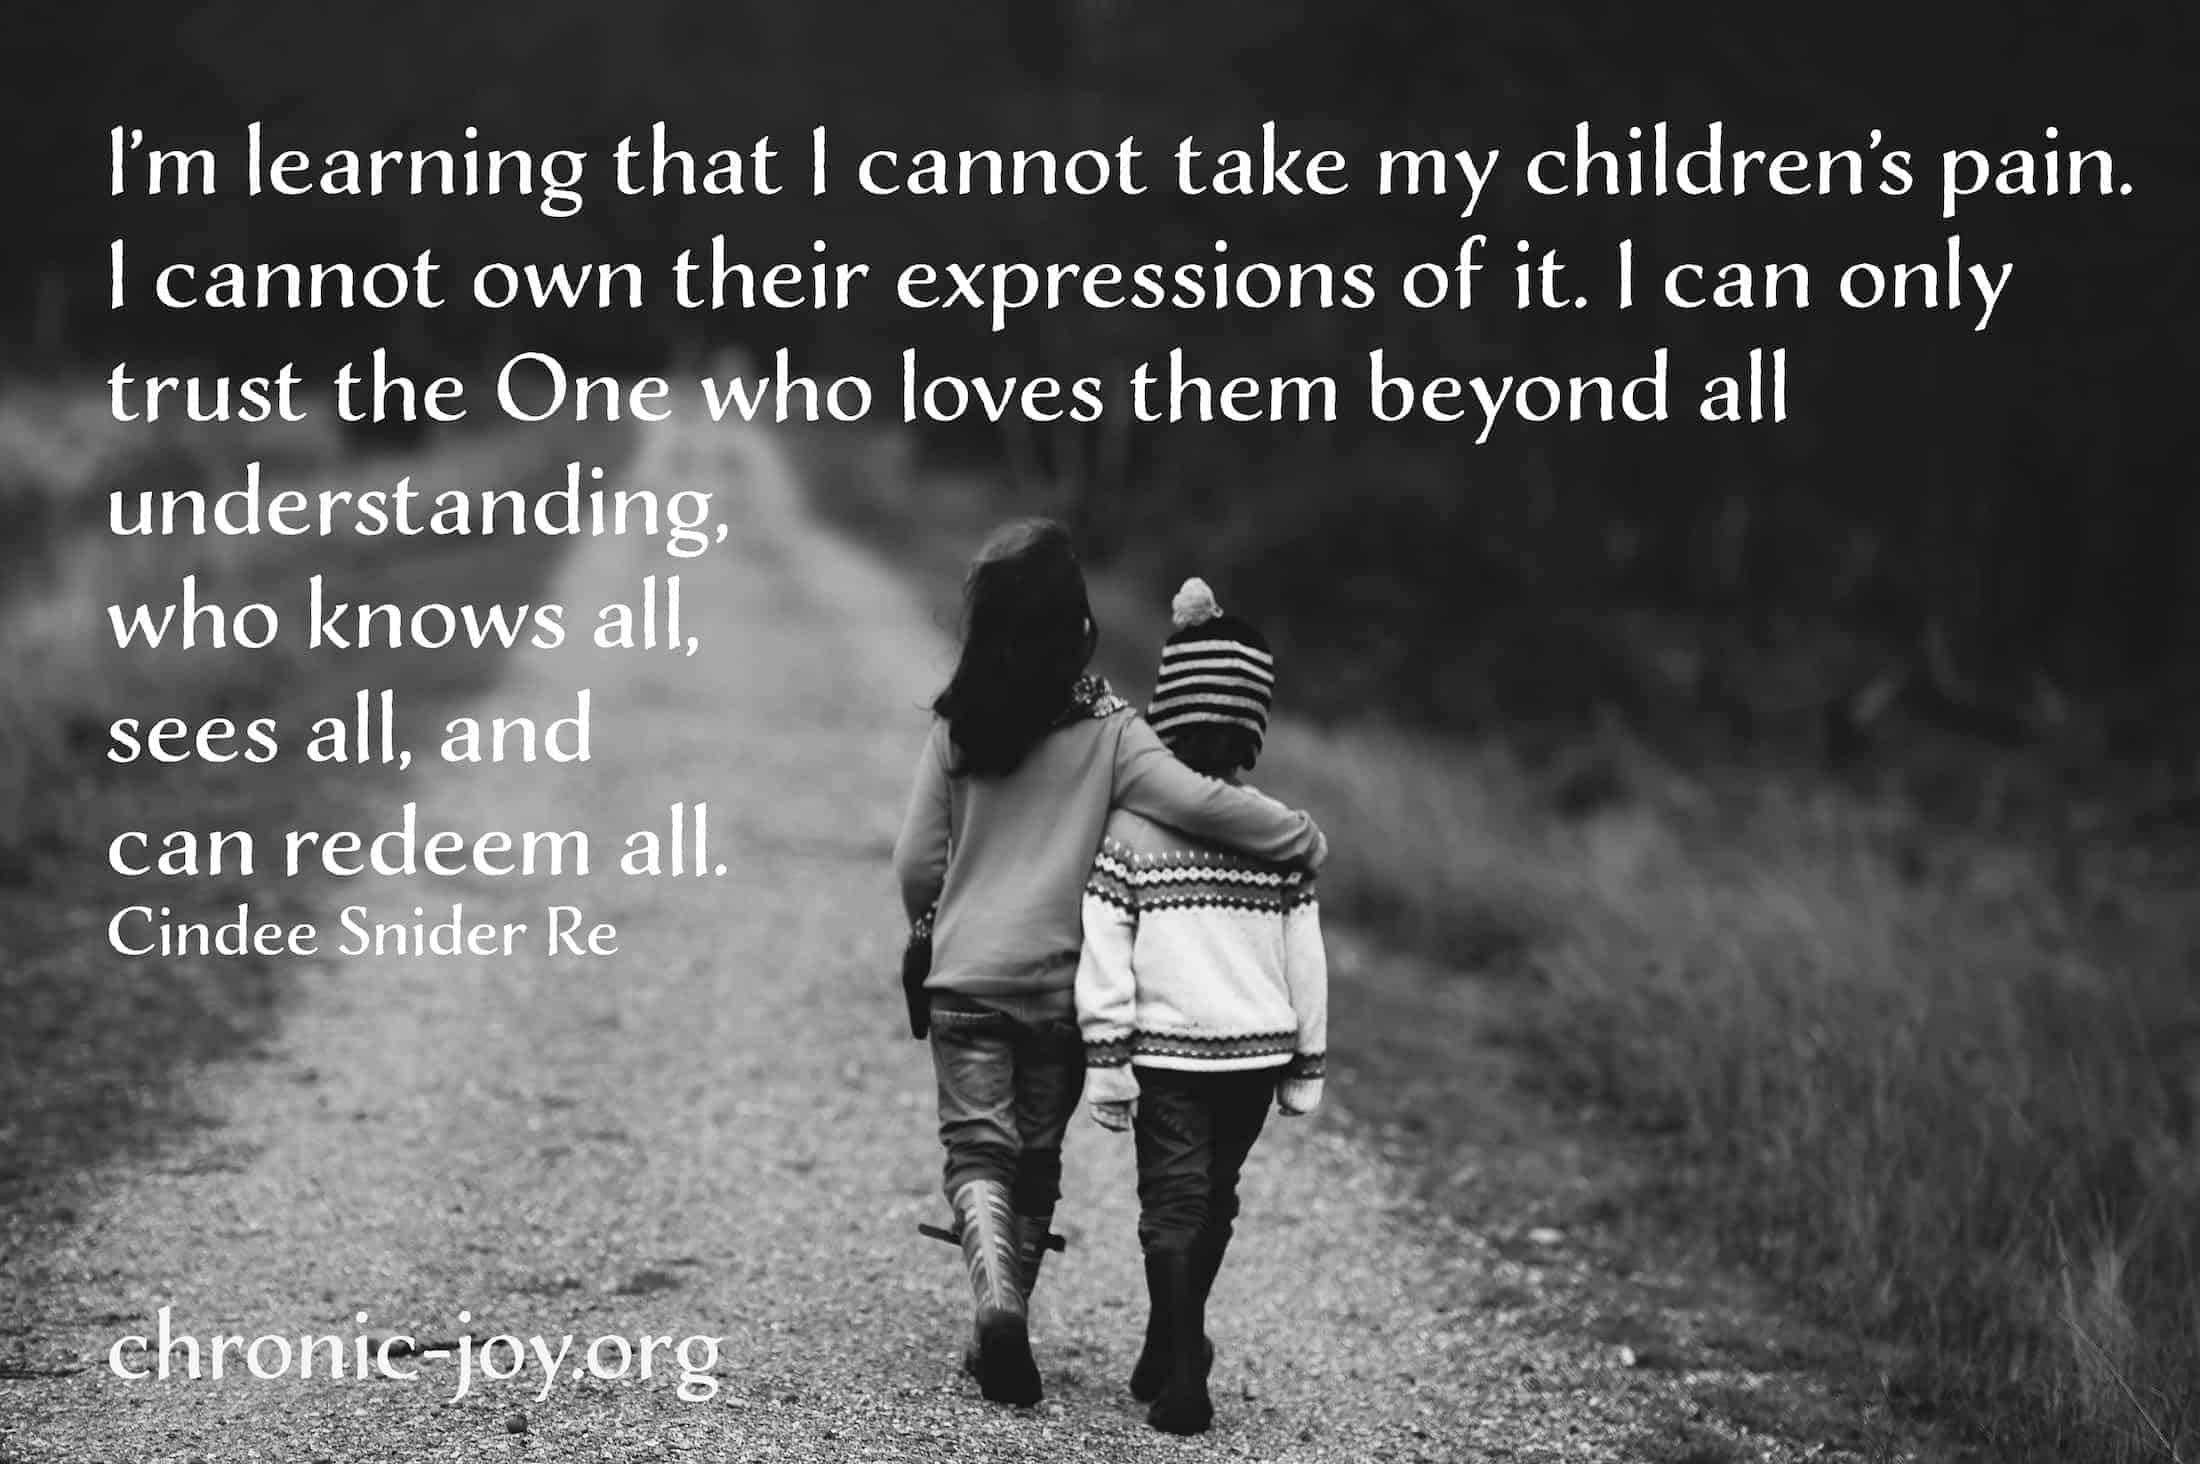 I cannot take my children's pain.